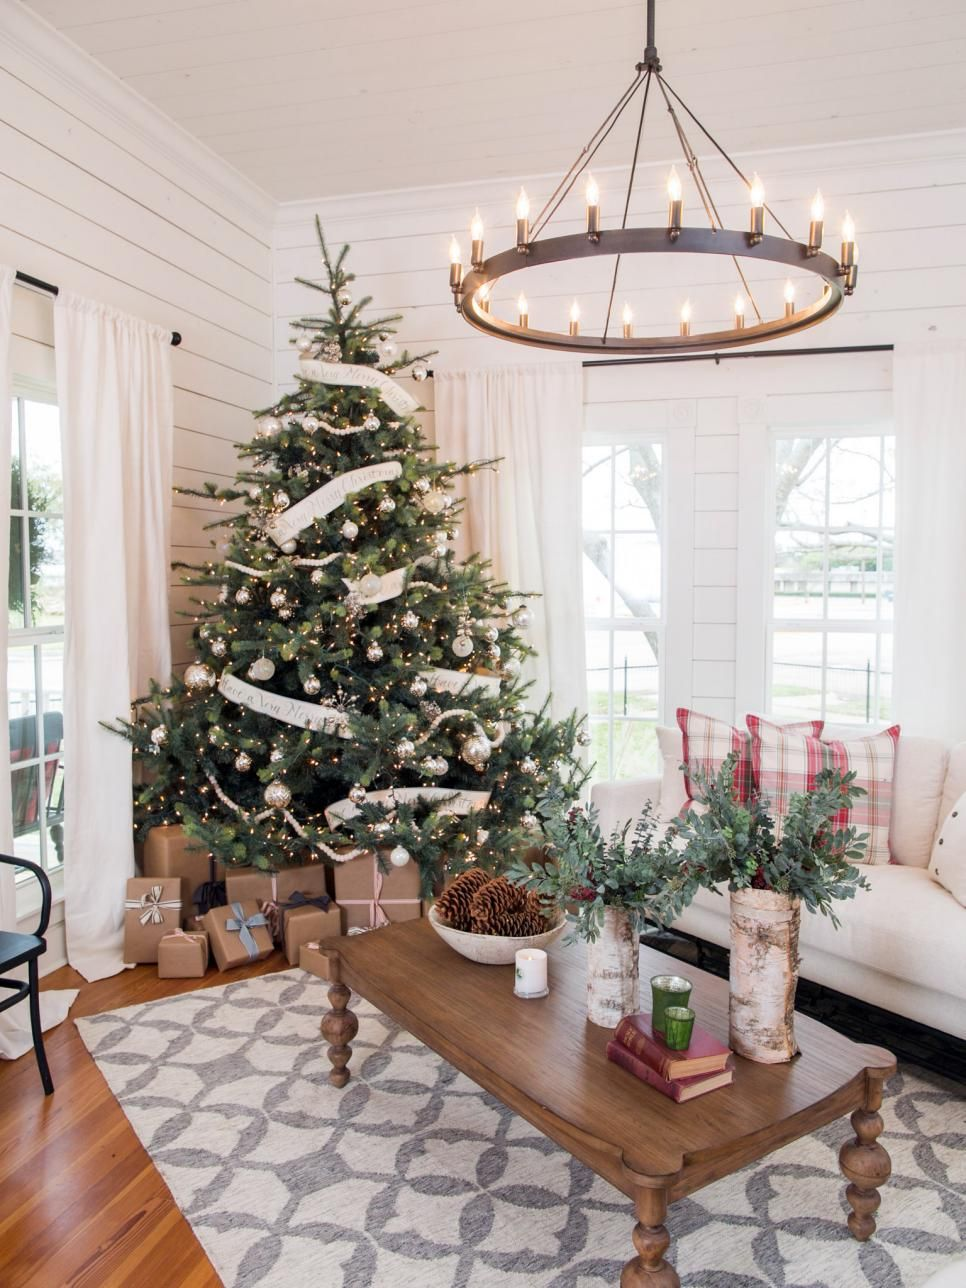 featured on hgtvs fixer upper holiday special christmas living room decor christmas tree decorations